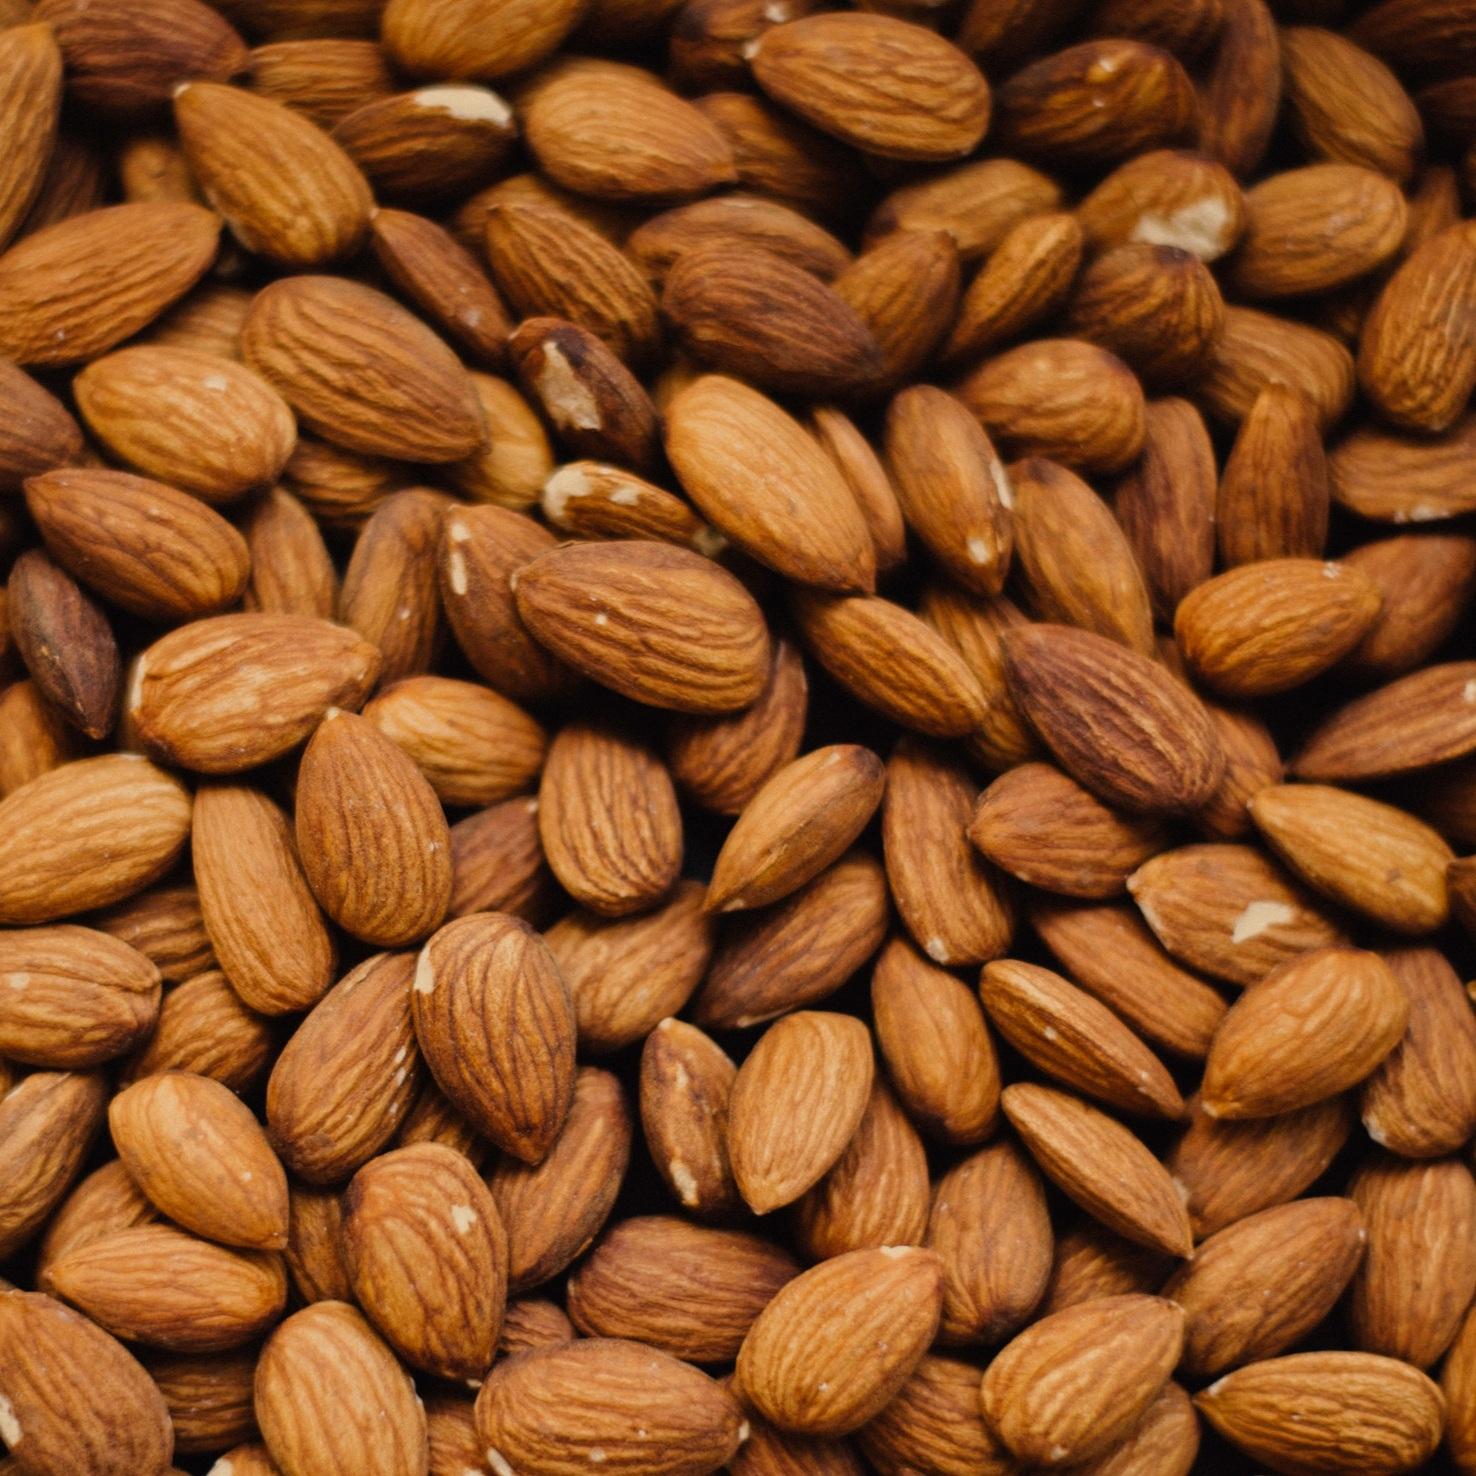 Pure Almond Butter - Our almond butter is 100% ground roasted almonds.